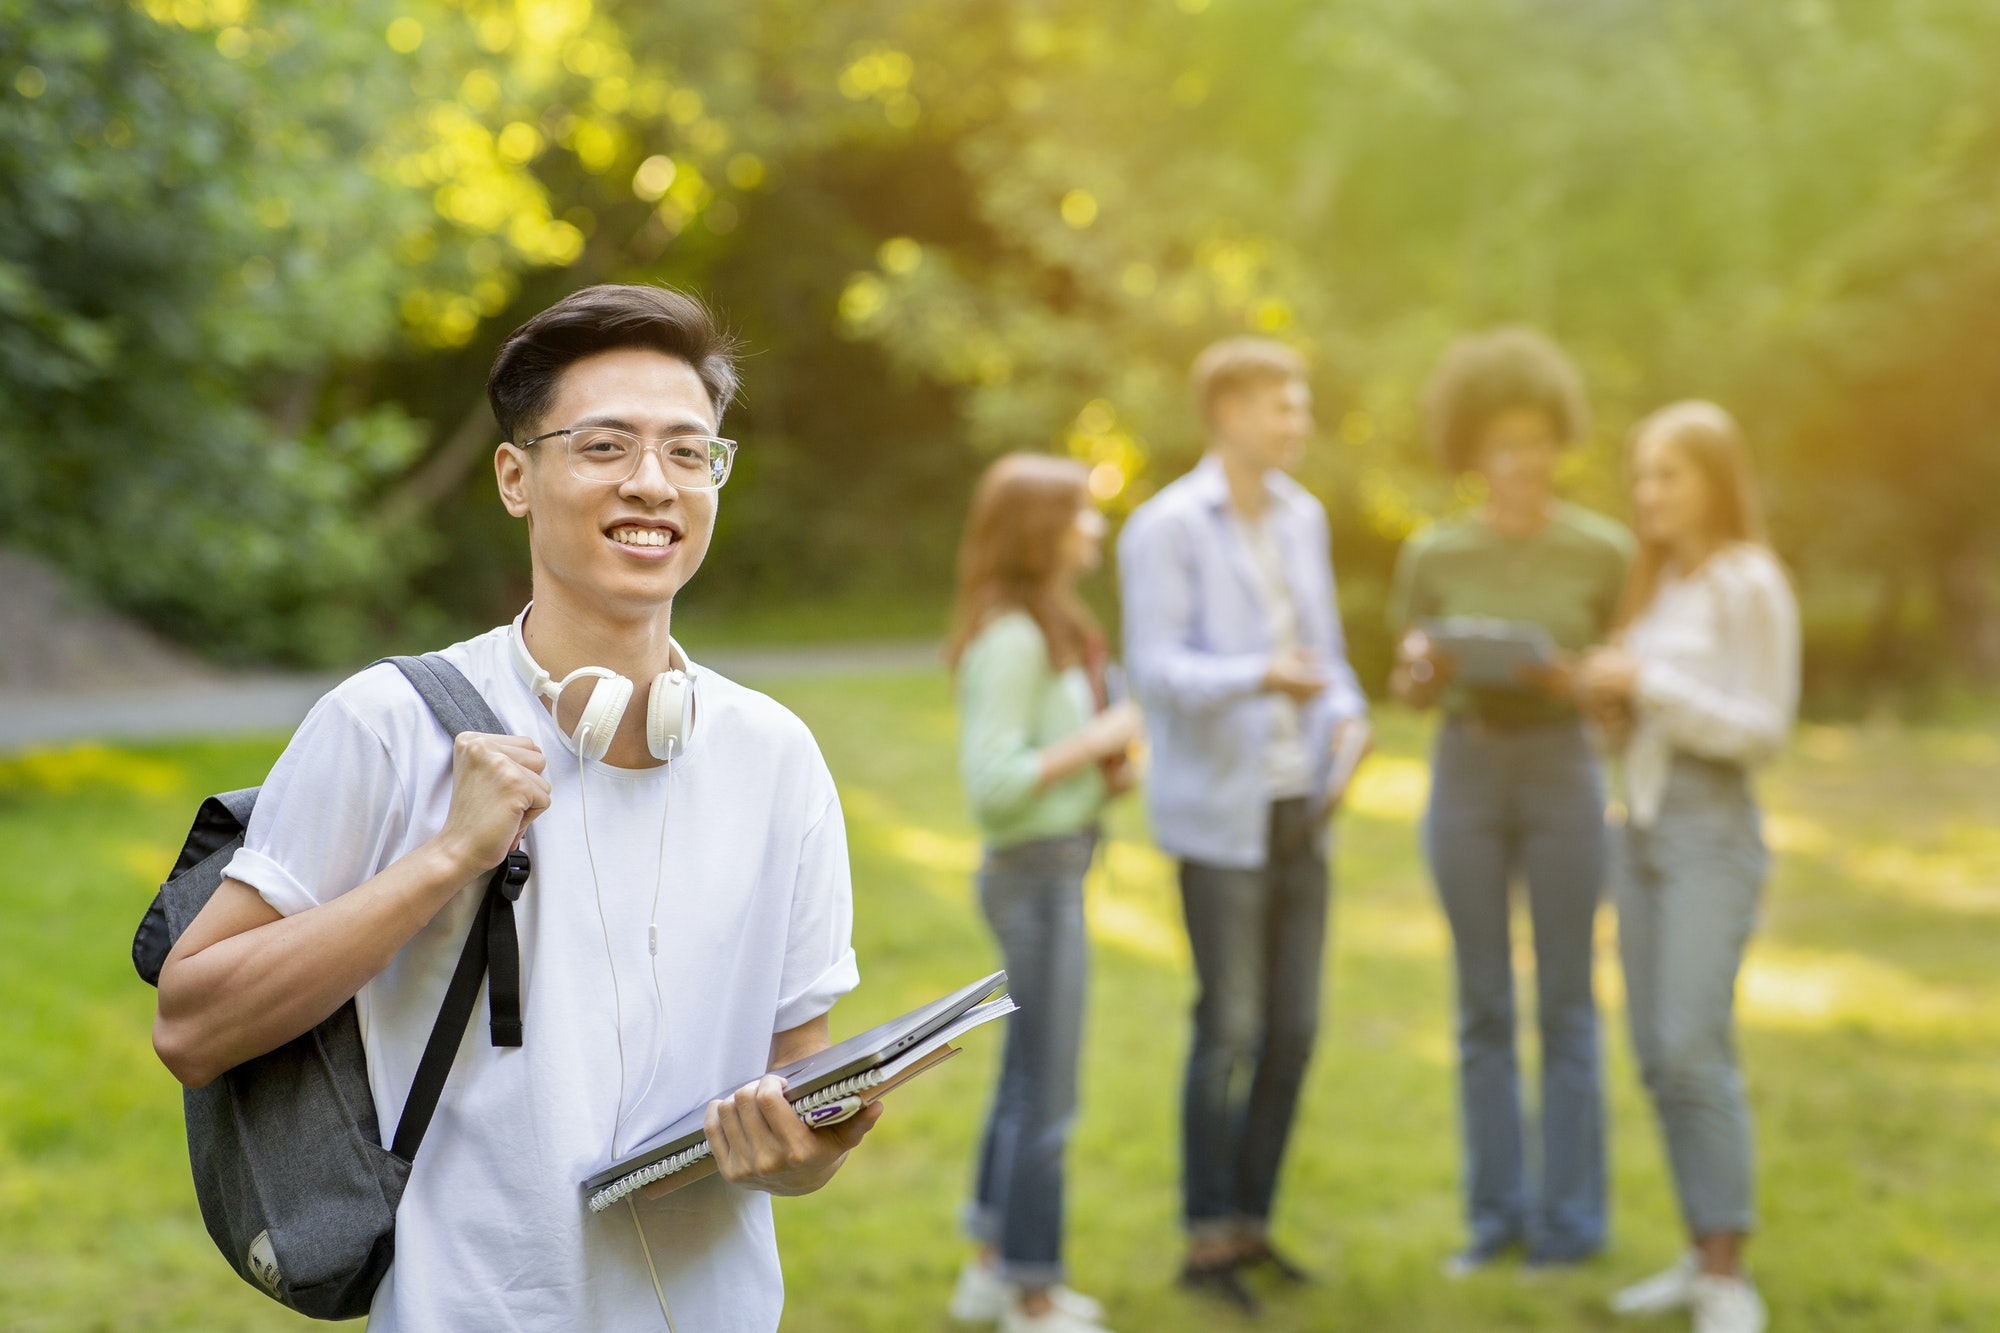 Scholarship Programs. Smiling male asian college student with backpack and workbooks outdoors